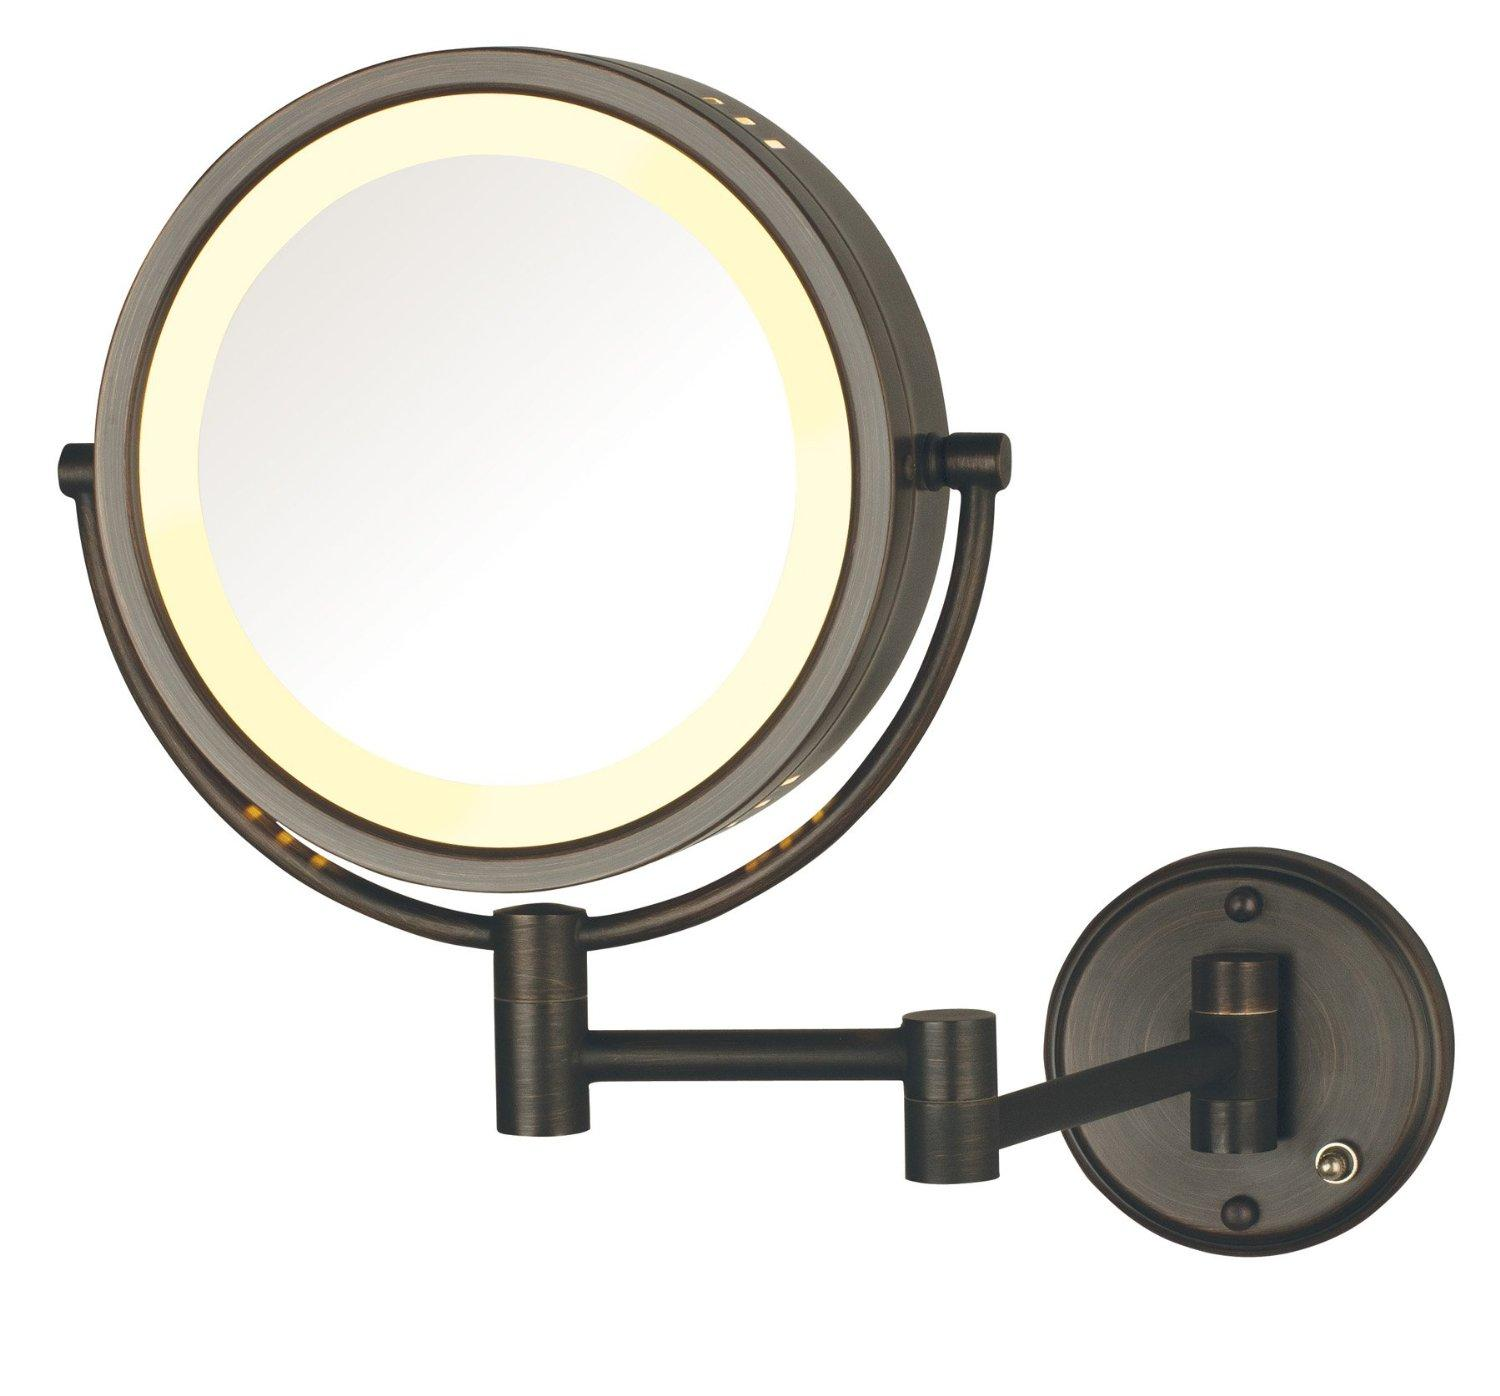 Jerdon Mounted Mirror Wiring Diagram Start Building A Amazon Com Hl75bzd 8 5 Inch Lighted Direct Wire Wall Mount Rh